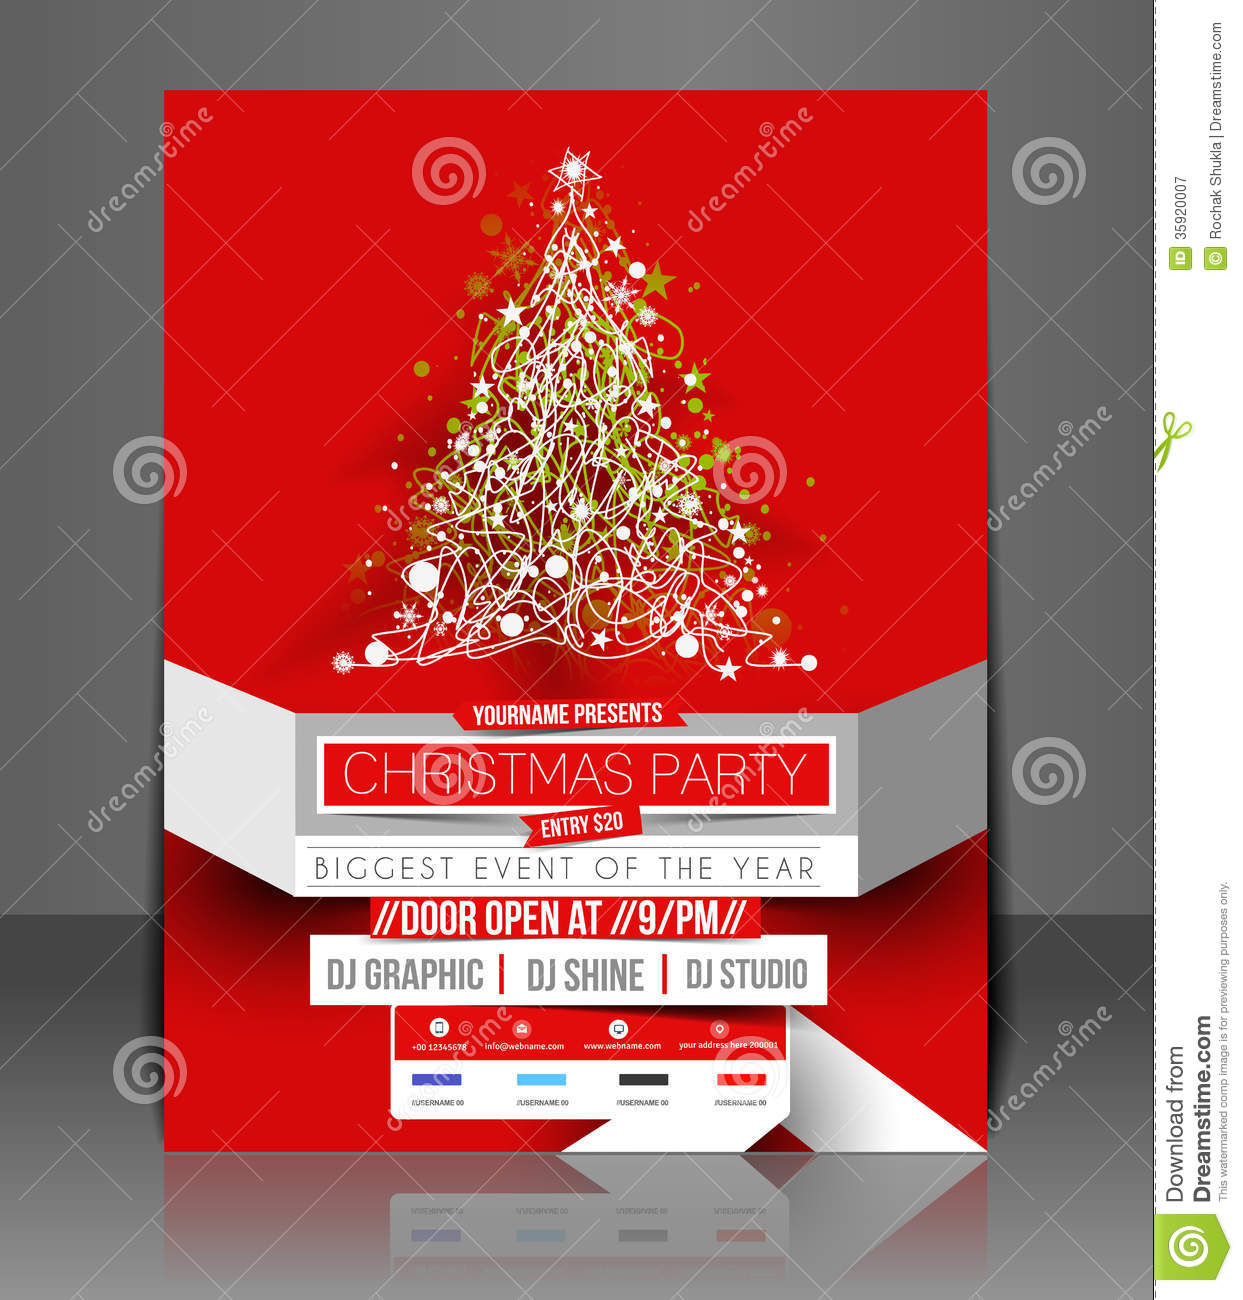 Christmas Party Flyer Royalty Free Stock Photography - Image: 35920007